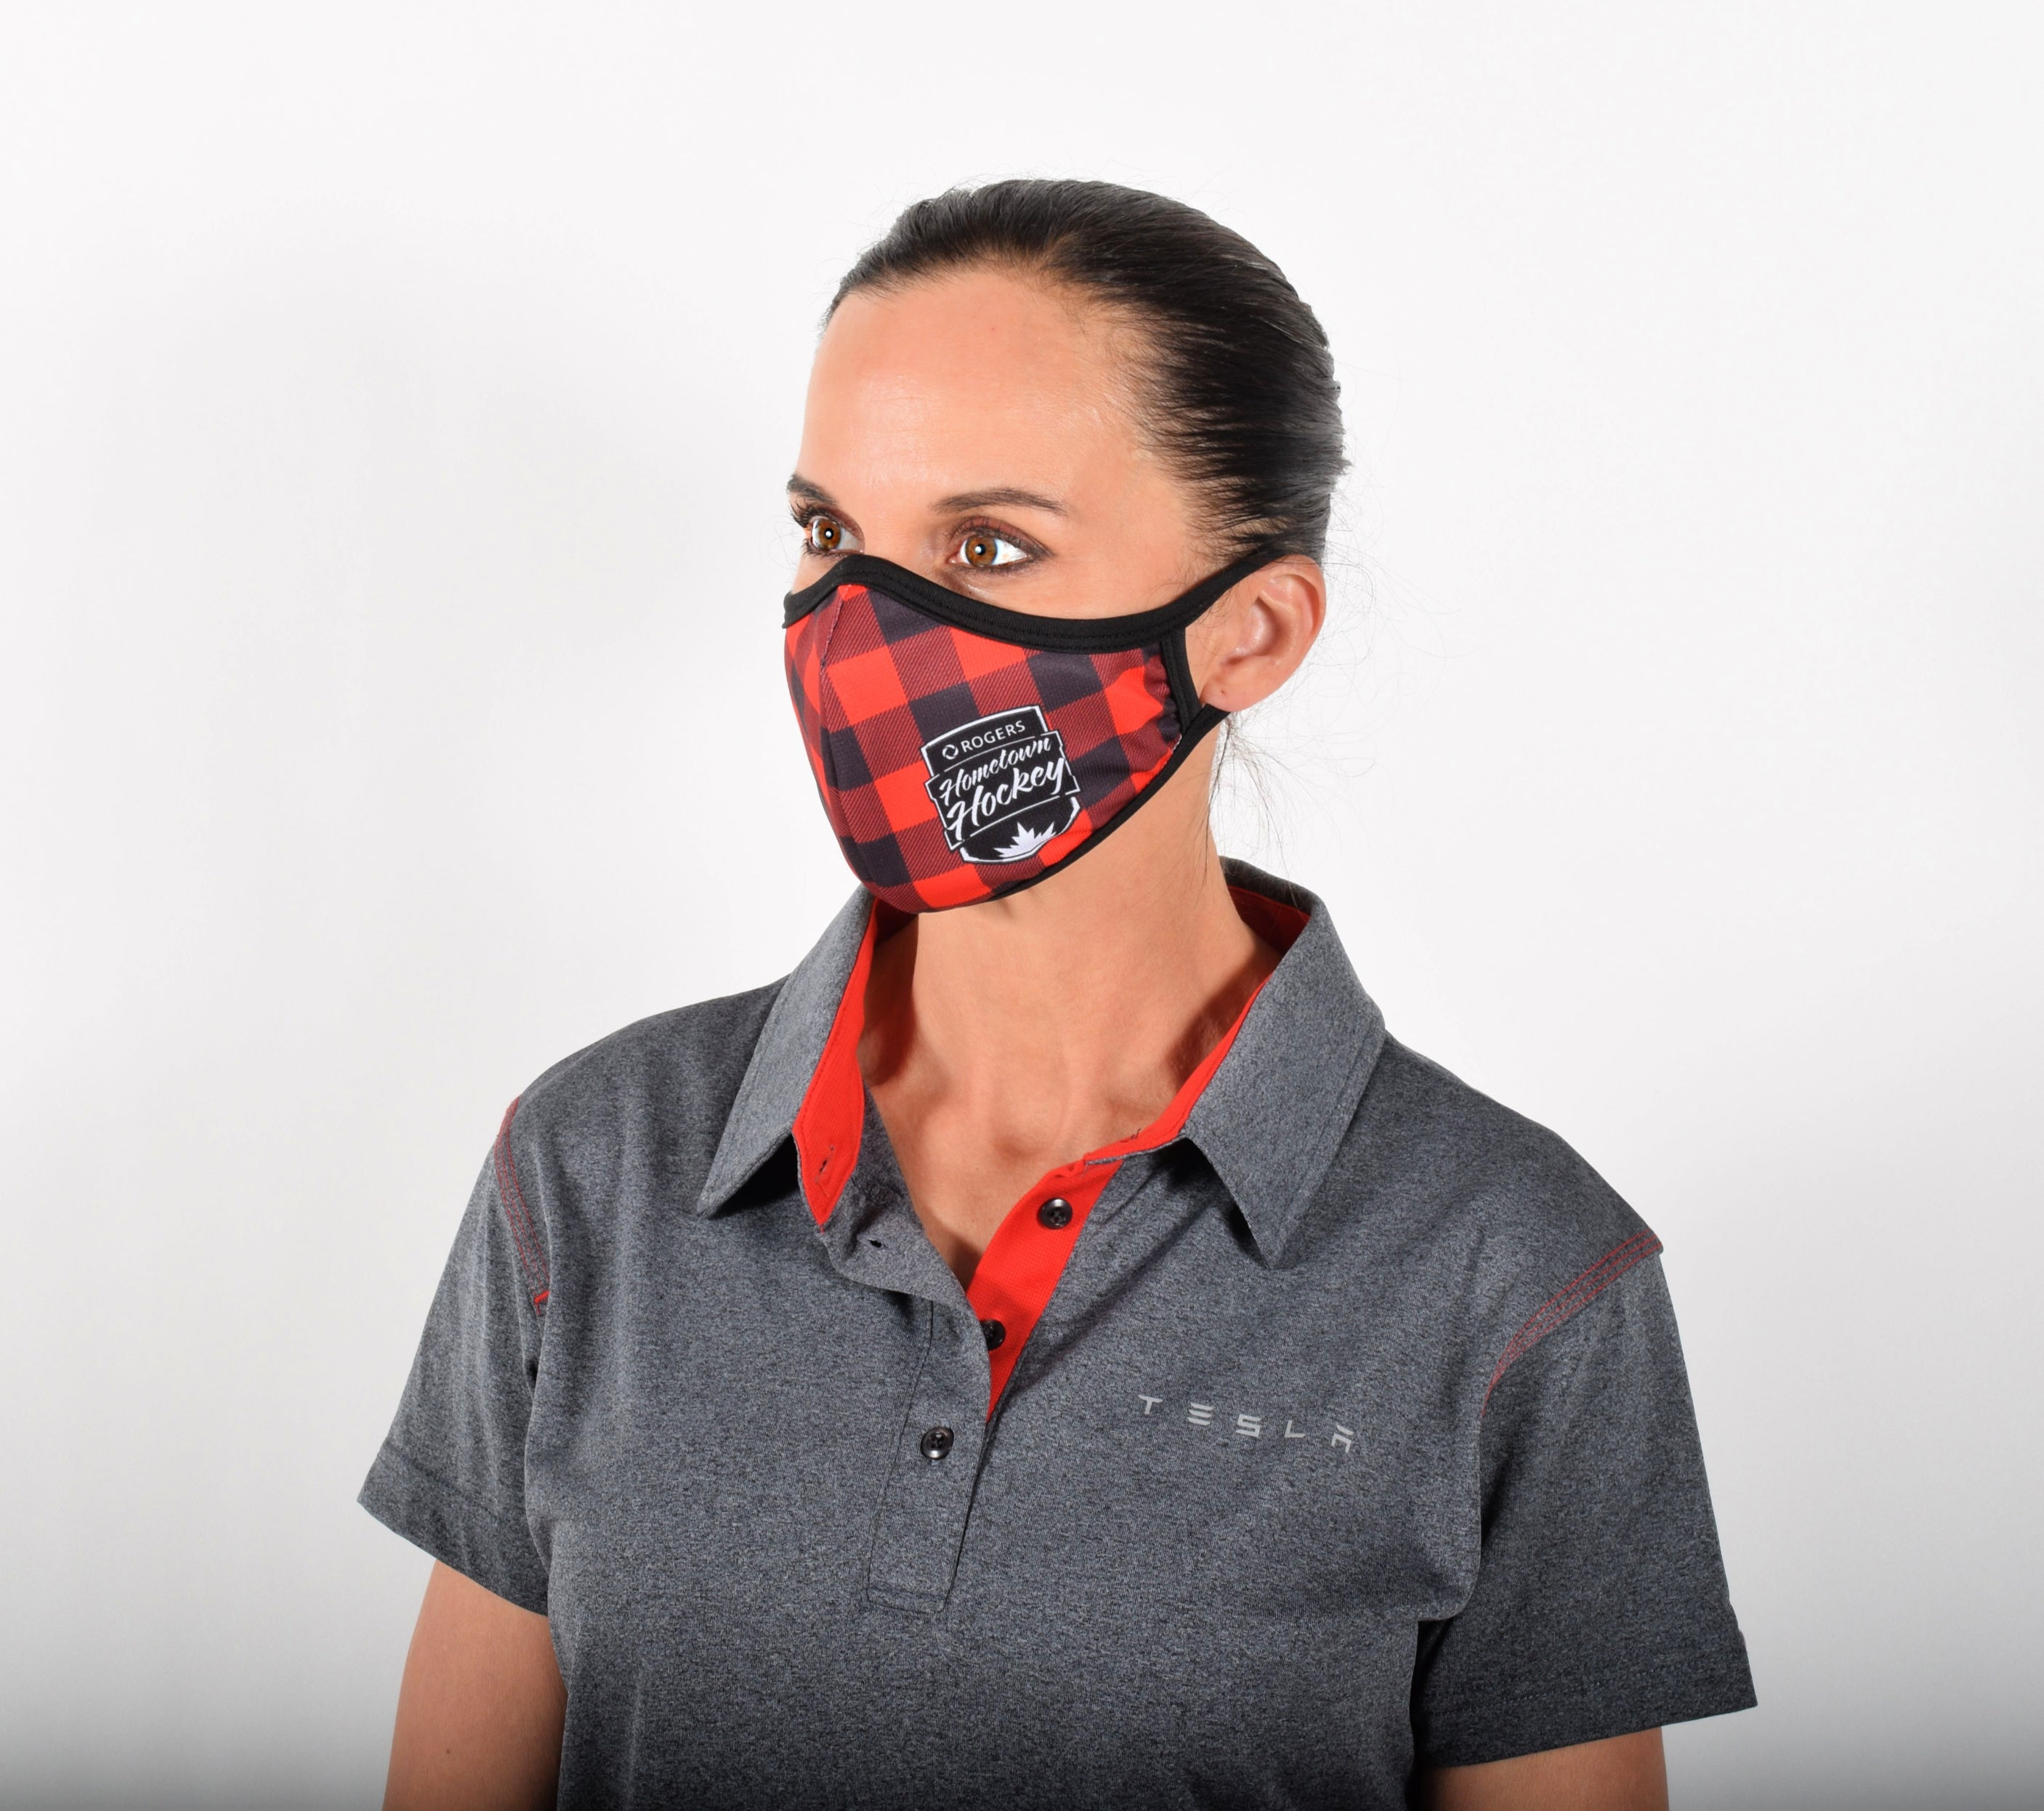 Women's Face Mask For Essential Workers with Sleeve for Filter Of Your Choice Such as N95